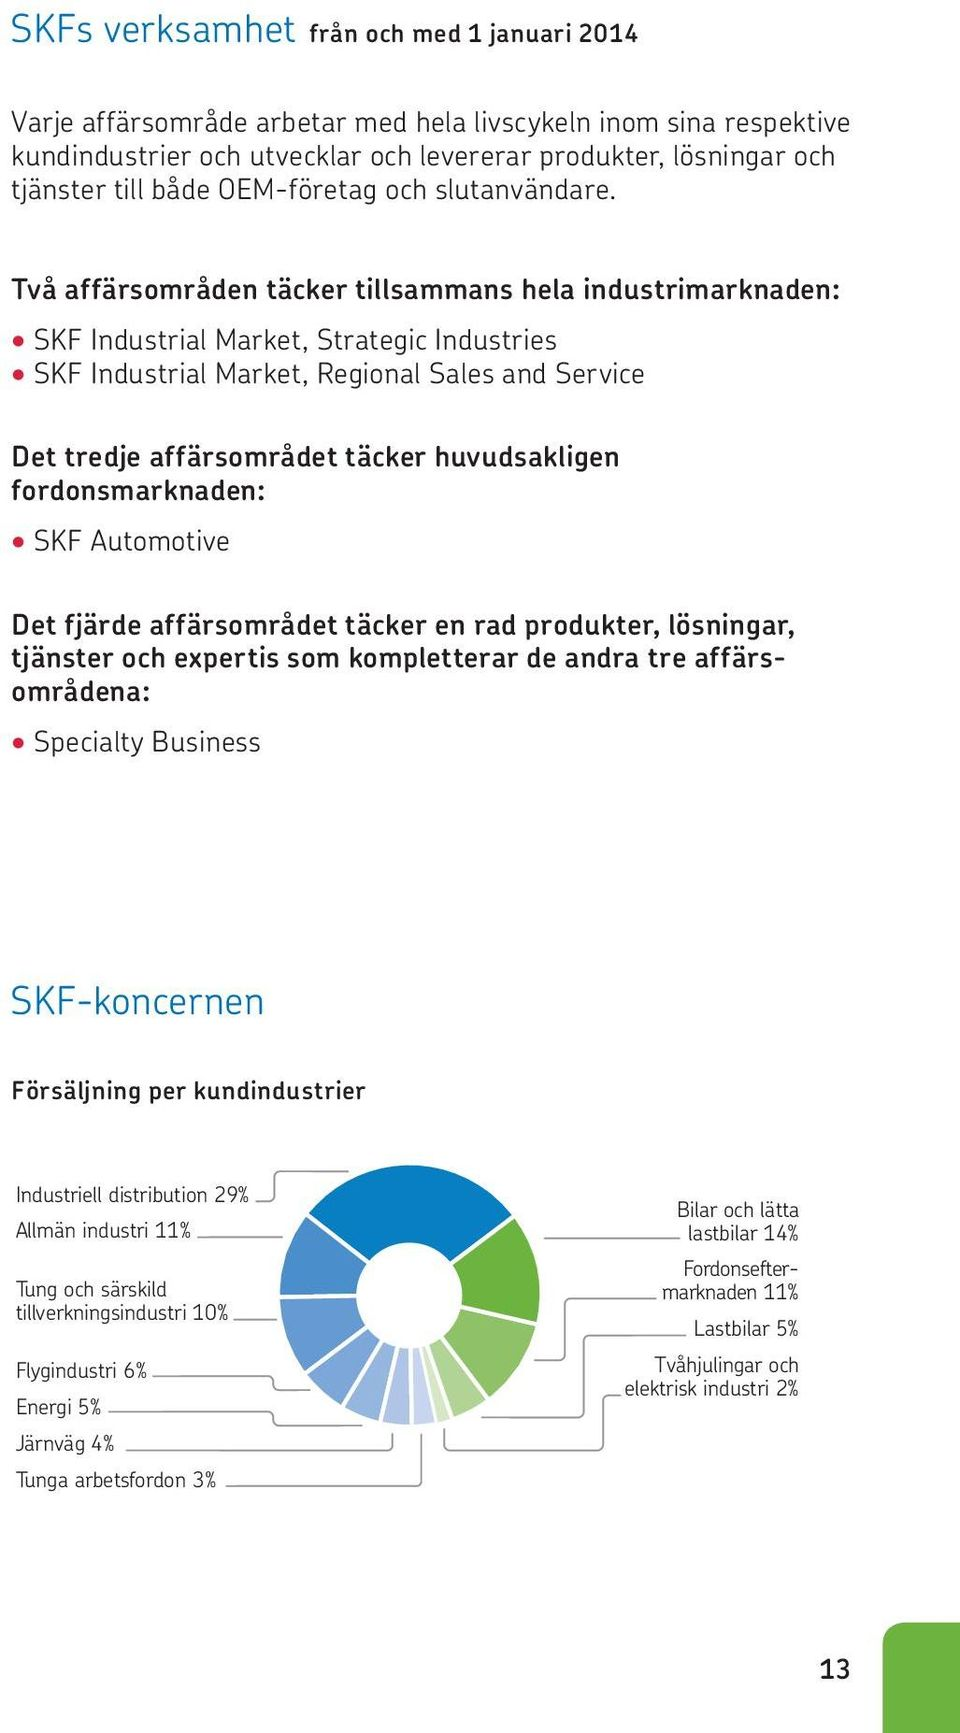 Två affärsområden täcker tillsammans hela industrimarknaden: SKF Industrial Market, Strategic Industries SKF Industrial Market, Regional Sales and Service Det tredje affärsområdet täcker